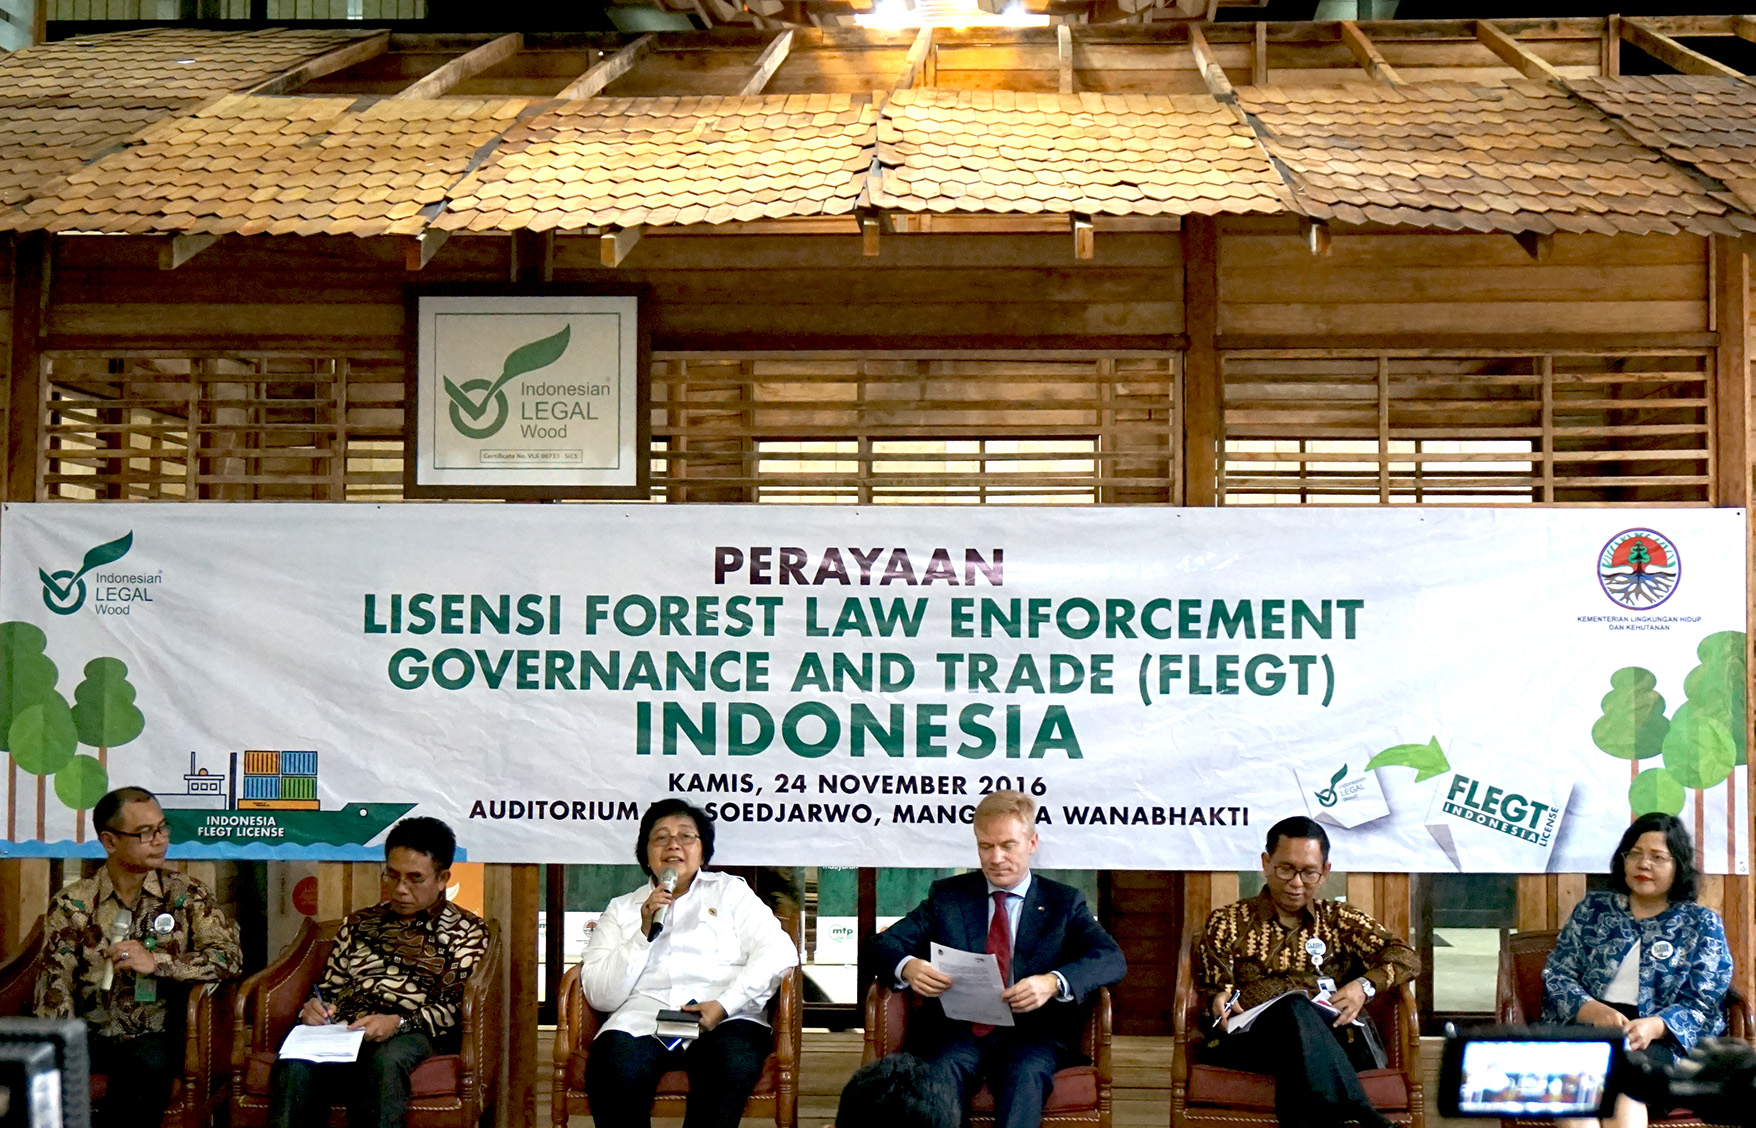 Indonesia is the First Country in the World to Achieve a FLEGT License